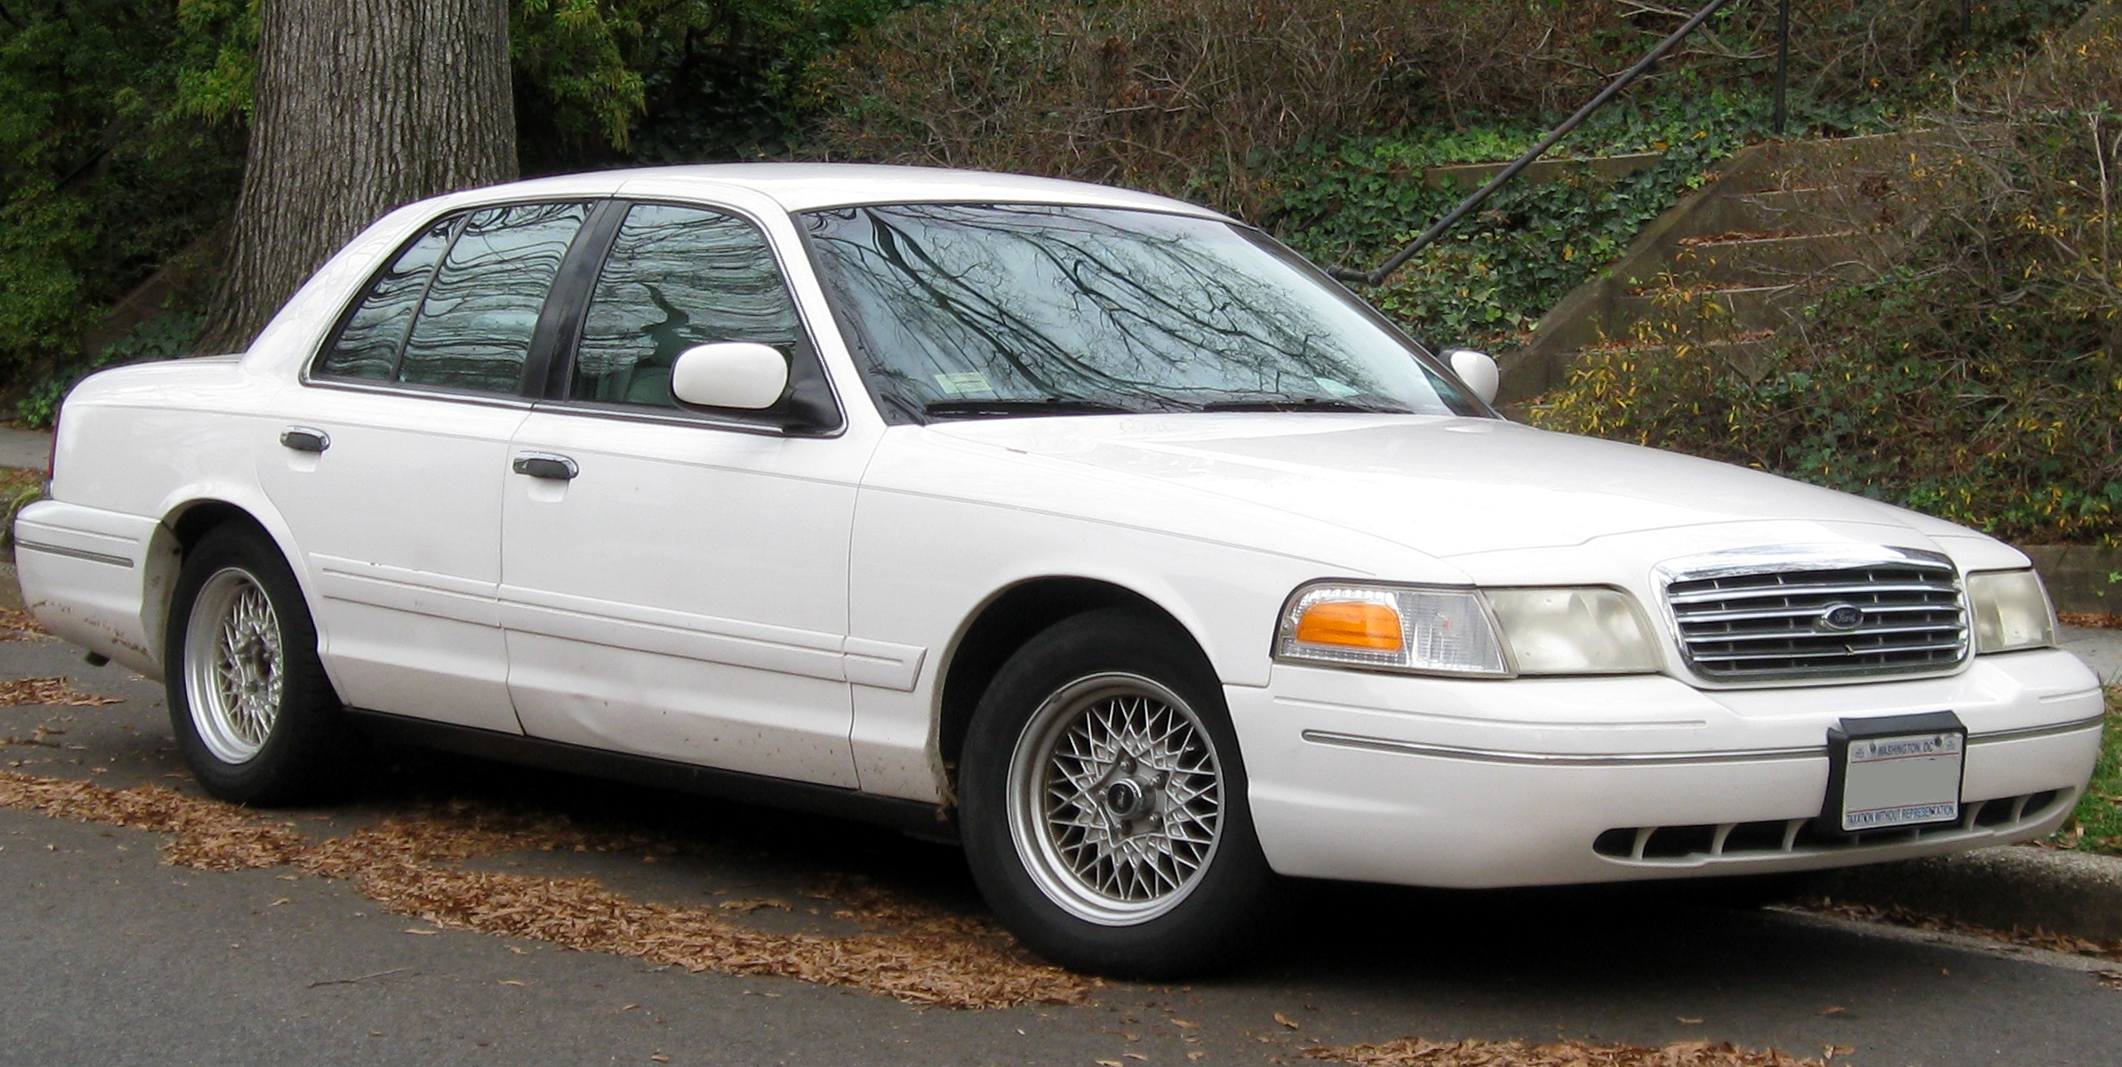 1998 Ford Crown Victoria Gray 200 Interior And Exterior Images